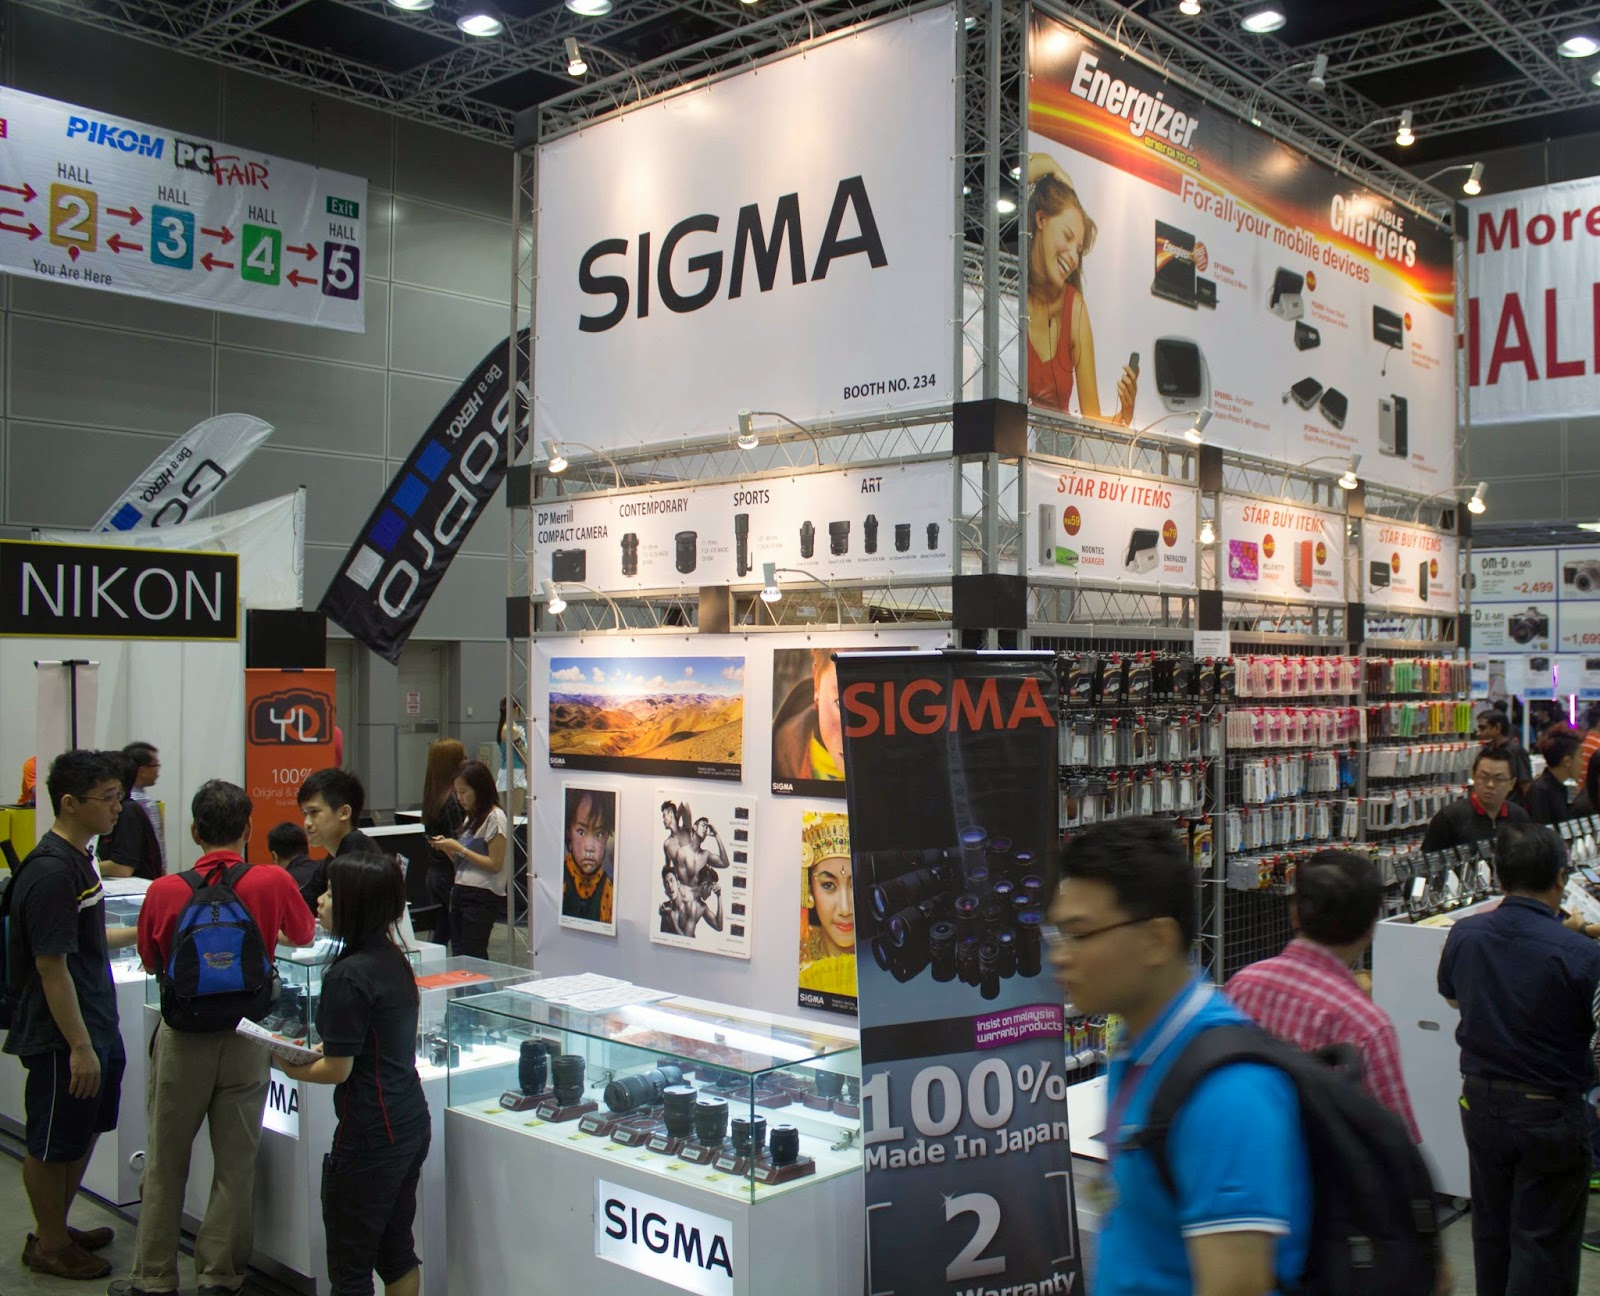 Coverage of PIKOM PC Fair 2014 @ Kuala Lumpur Convention Center 349